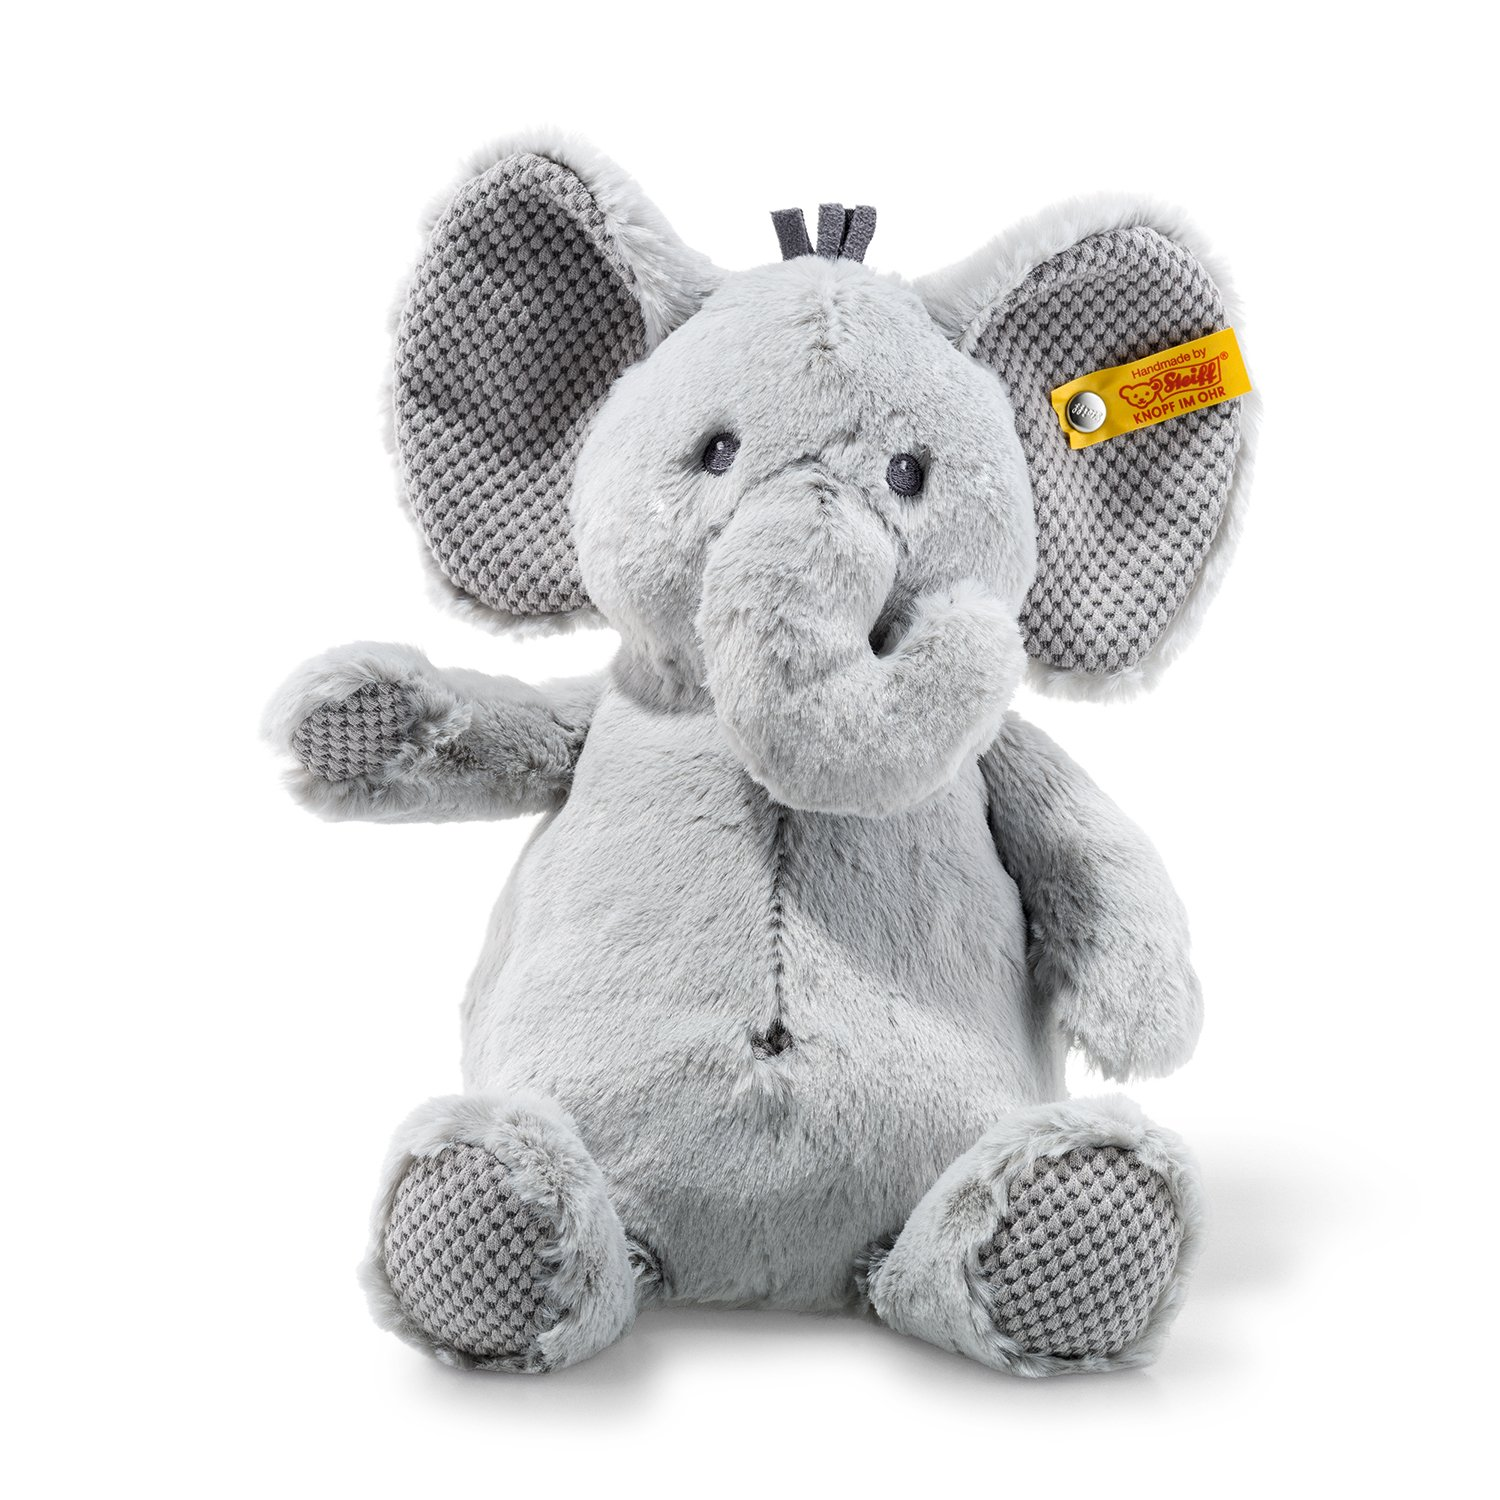 Amazon Com Steiff Ellie Elephant Stuffed Animal Soft And Cuddly